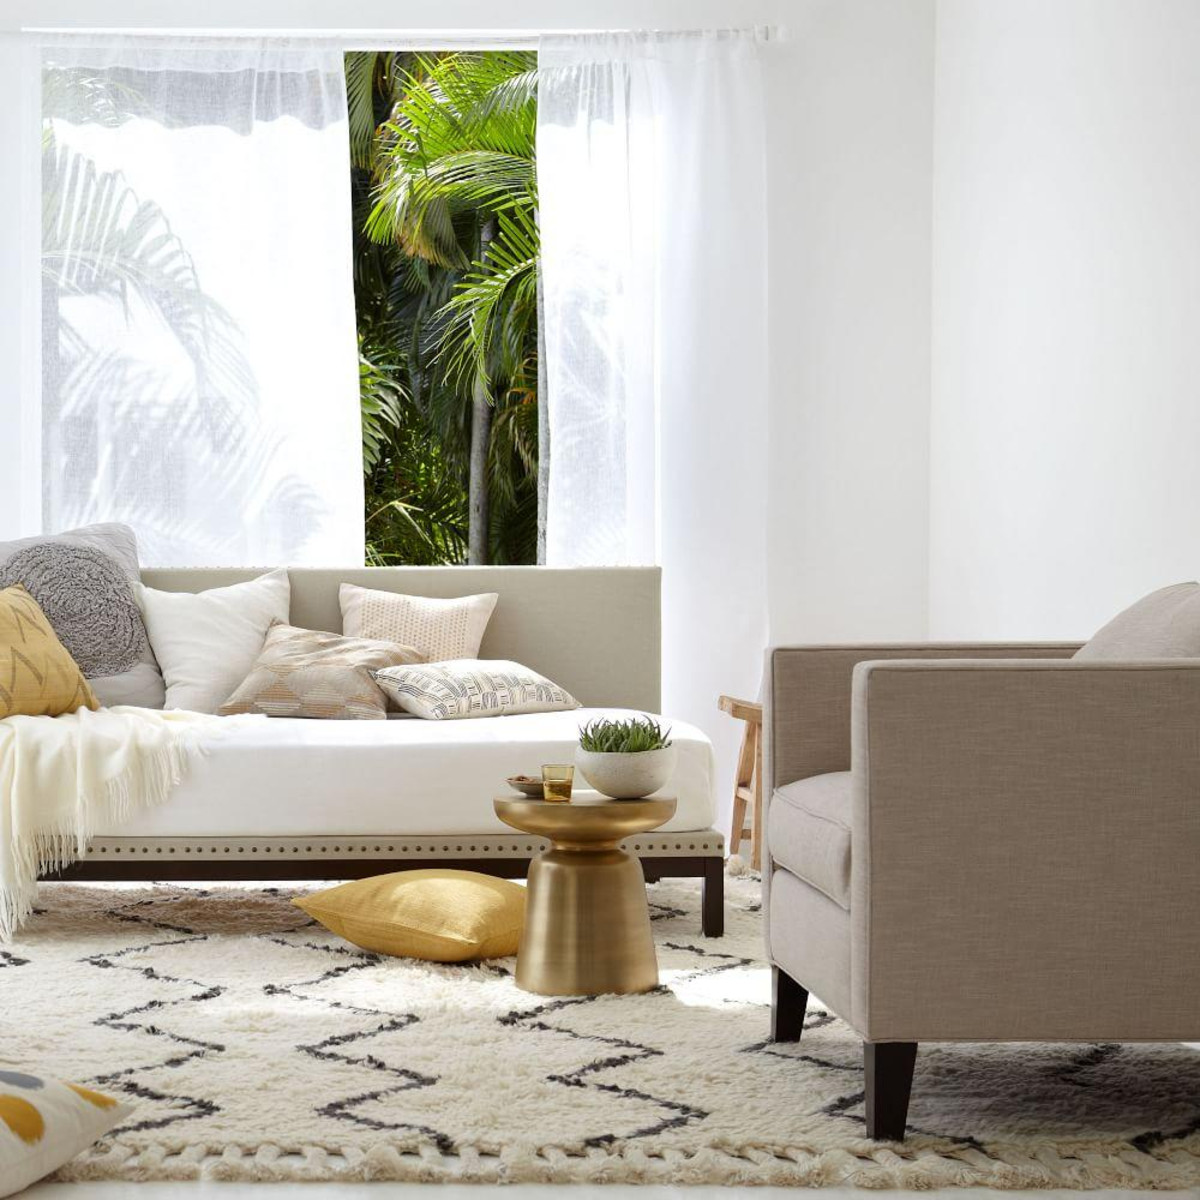 WEST ELM Souk Wool Rug - Ivory  $223.00 - $1343.00